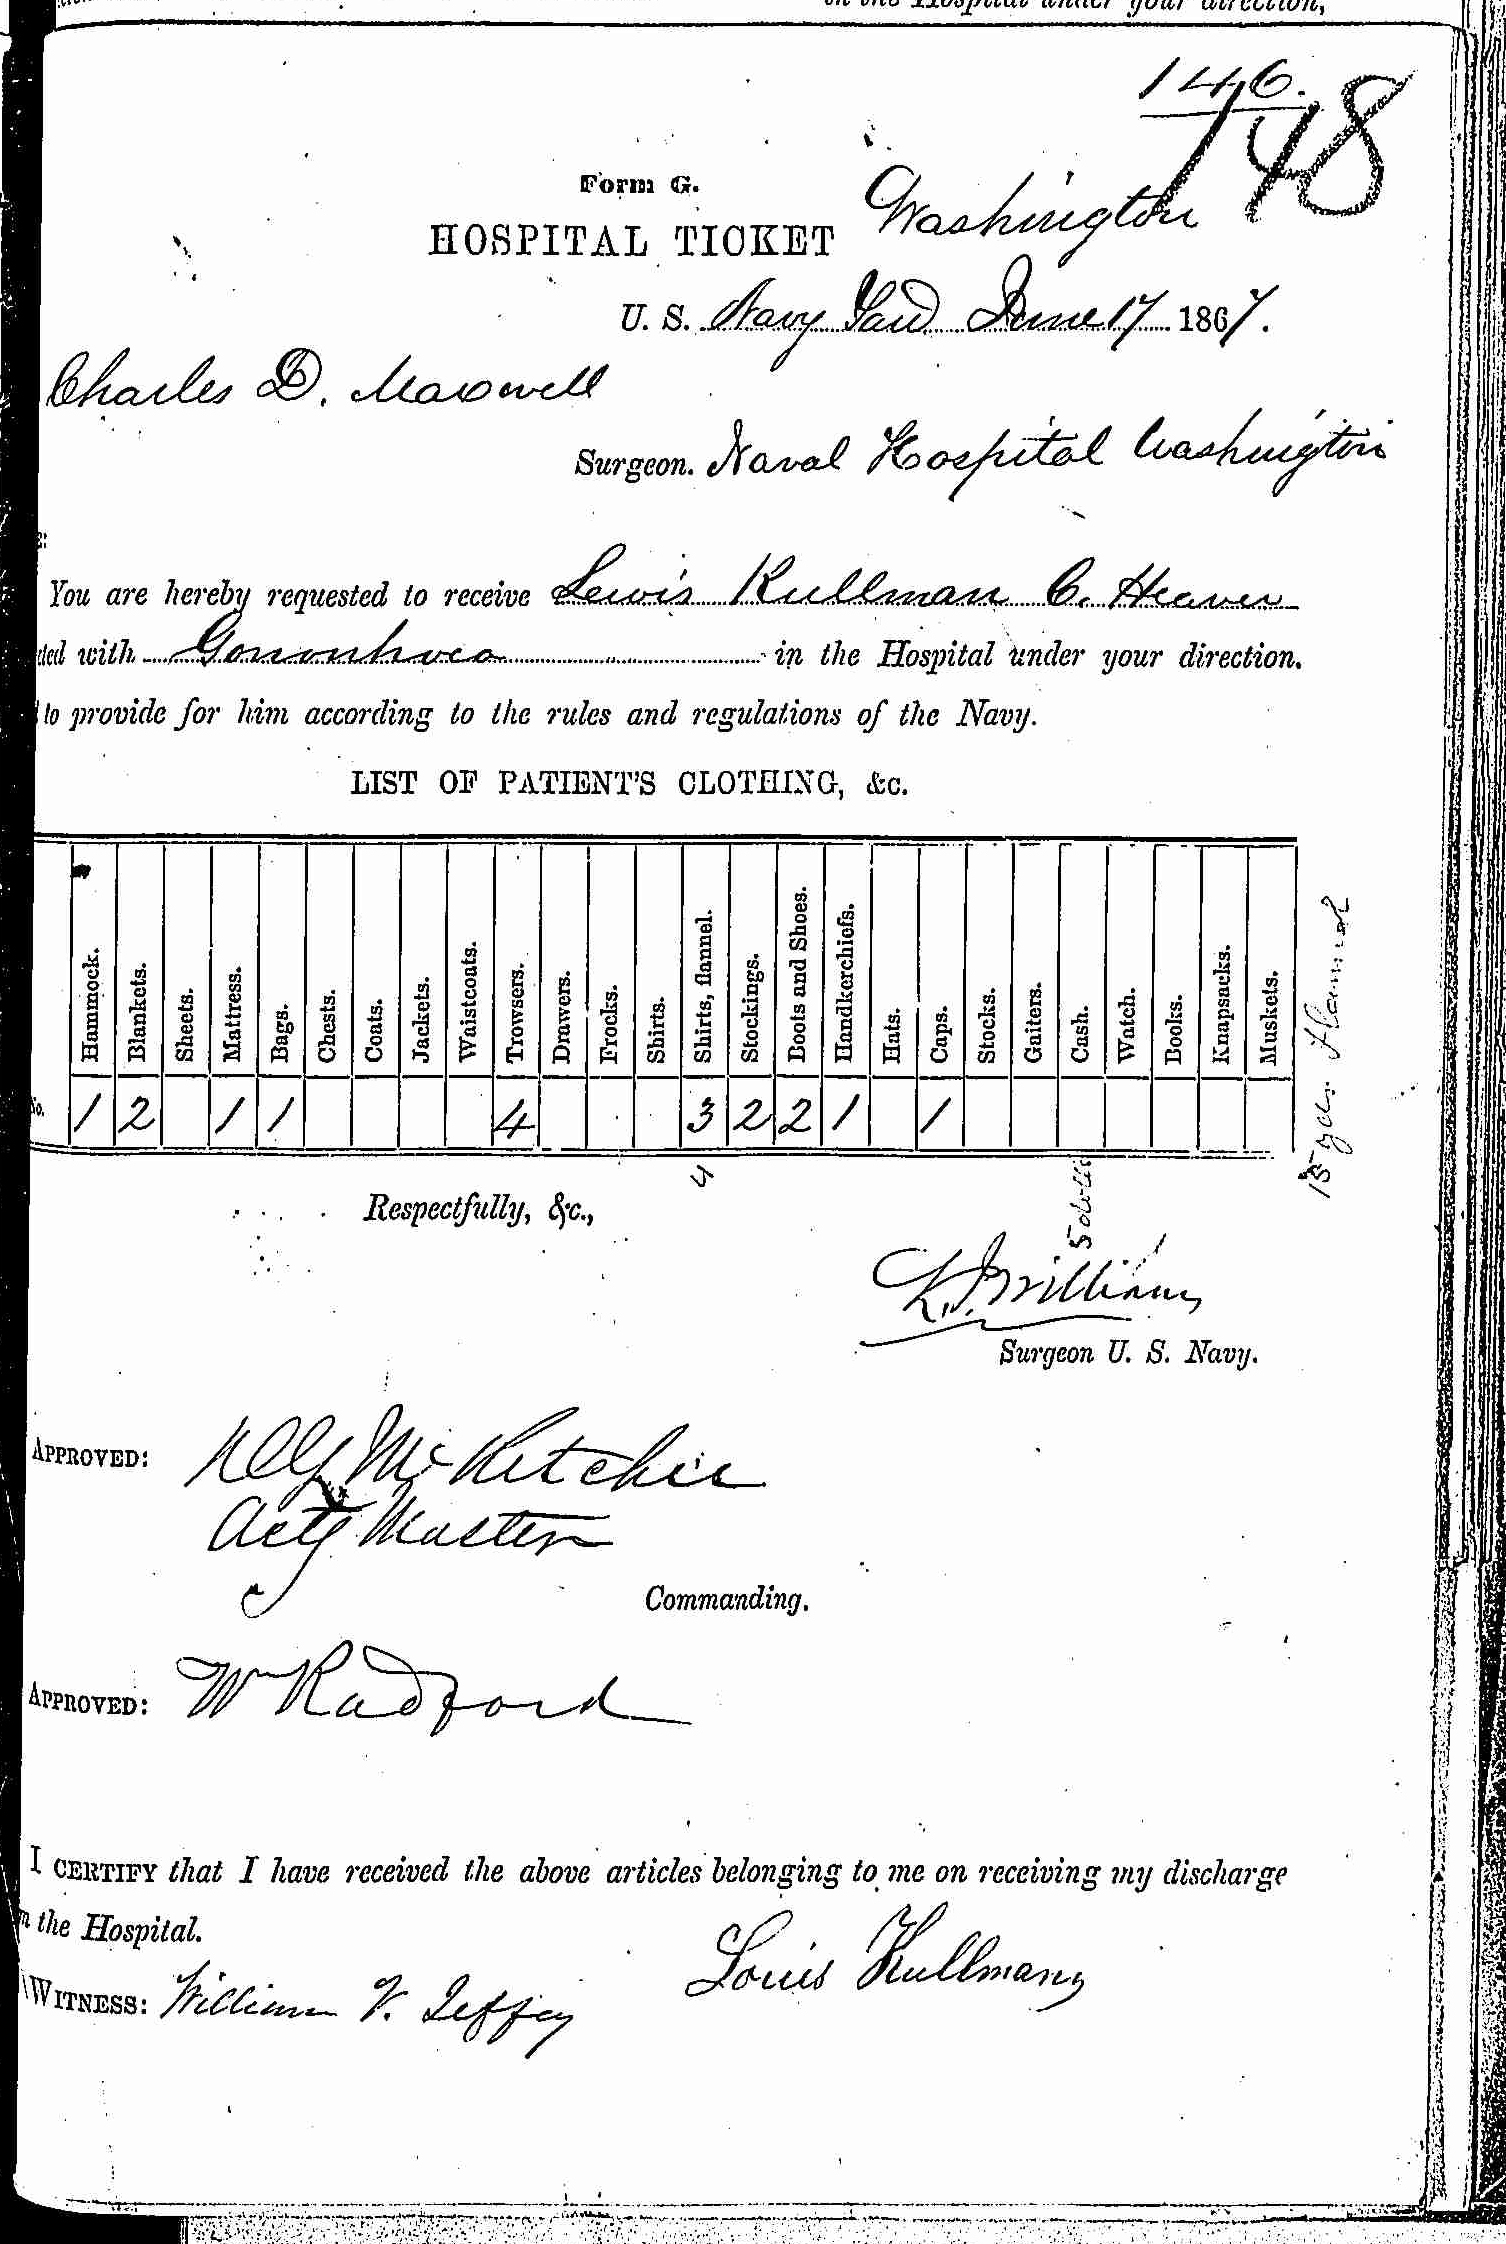 Entry for Lewis Kellman (page 1 of 2) in the log Hospital Tickets and Case Papers - Naval Hospital - Washington, D.C. - 1866-68